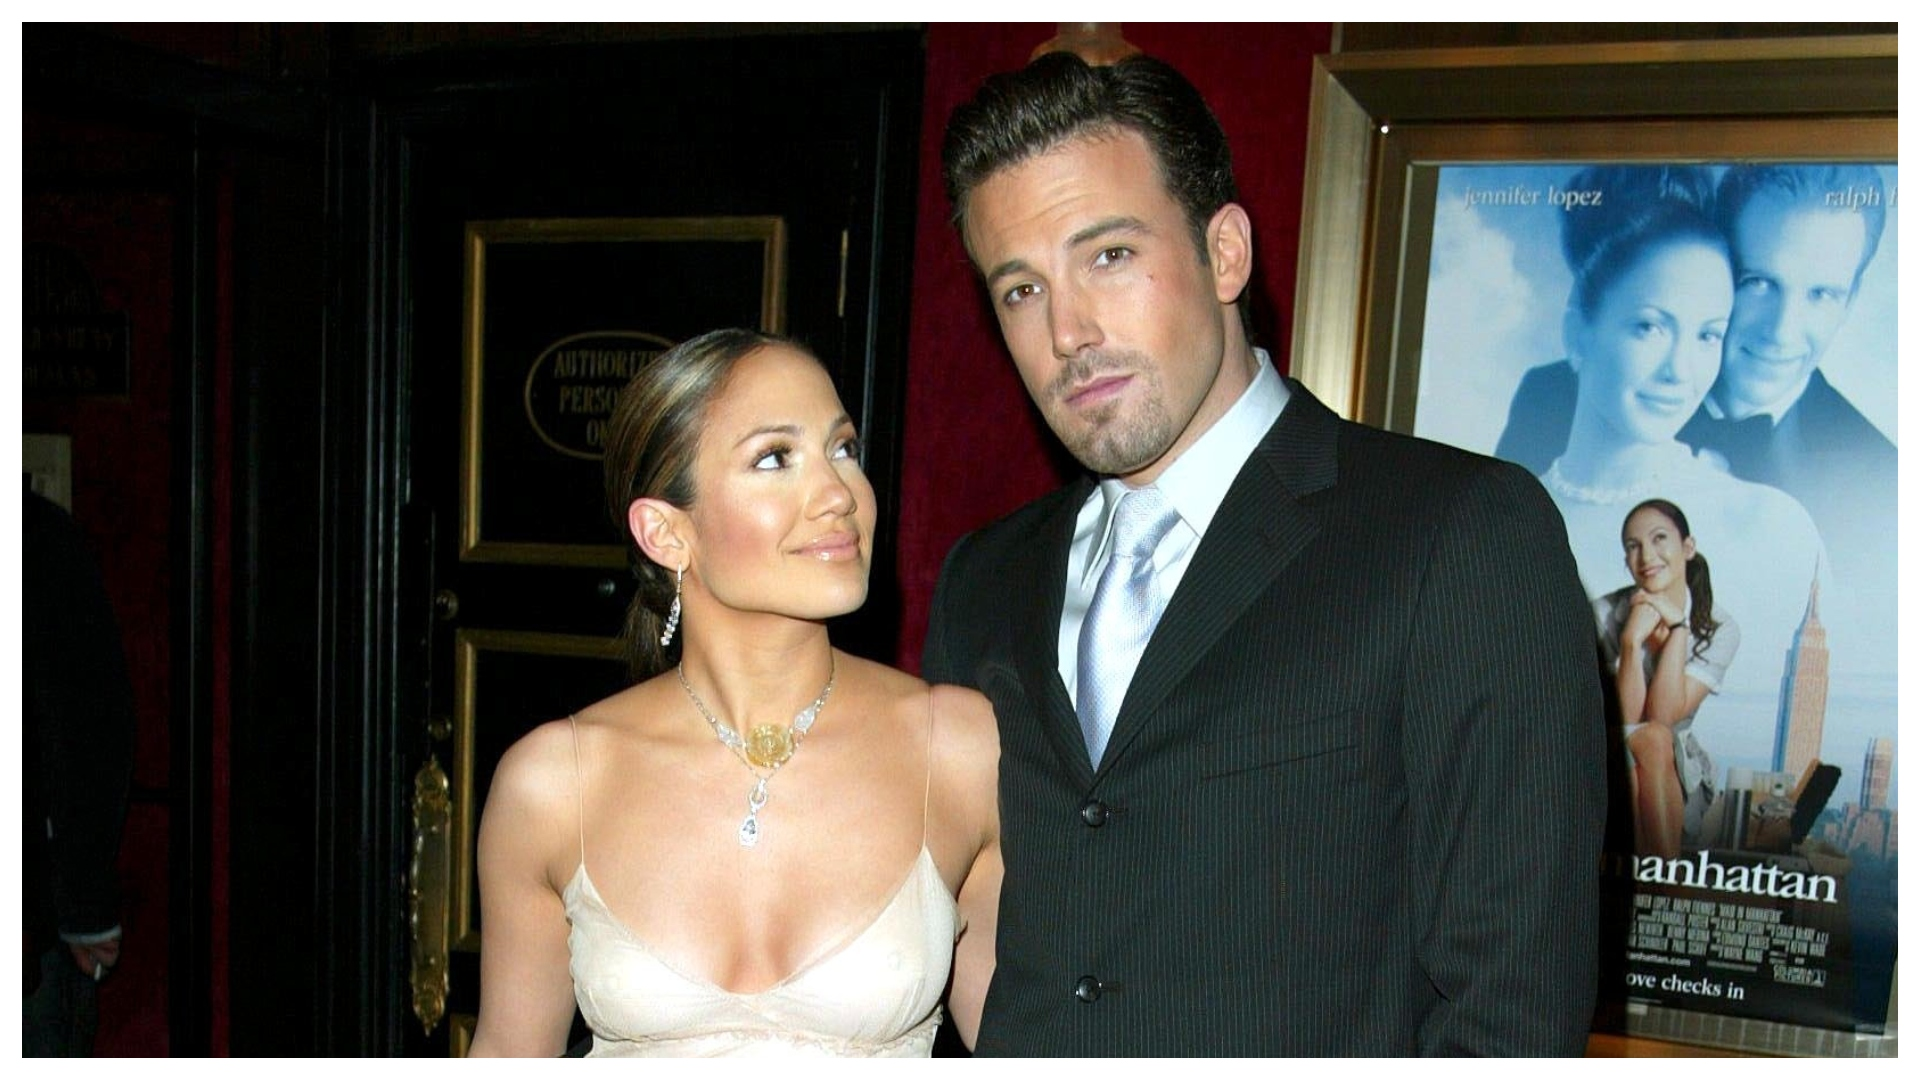 Ben Affleck Gushes Over Ex Jennifer Lopez: 'She's the Real Thing'